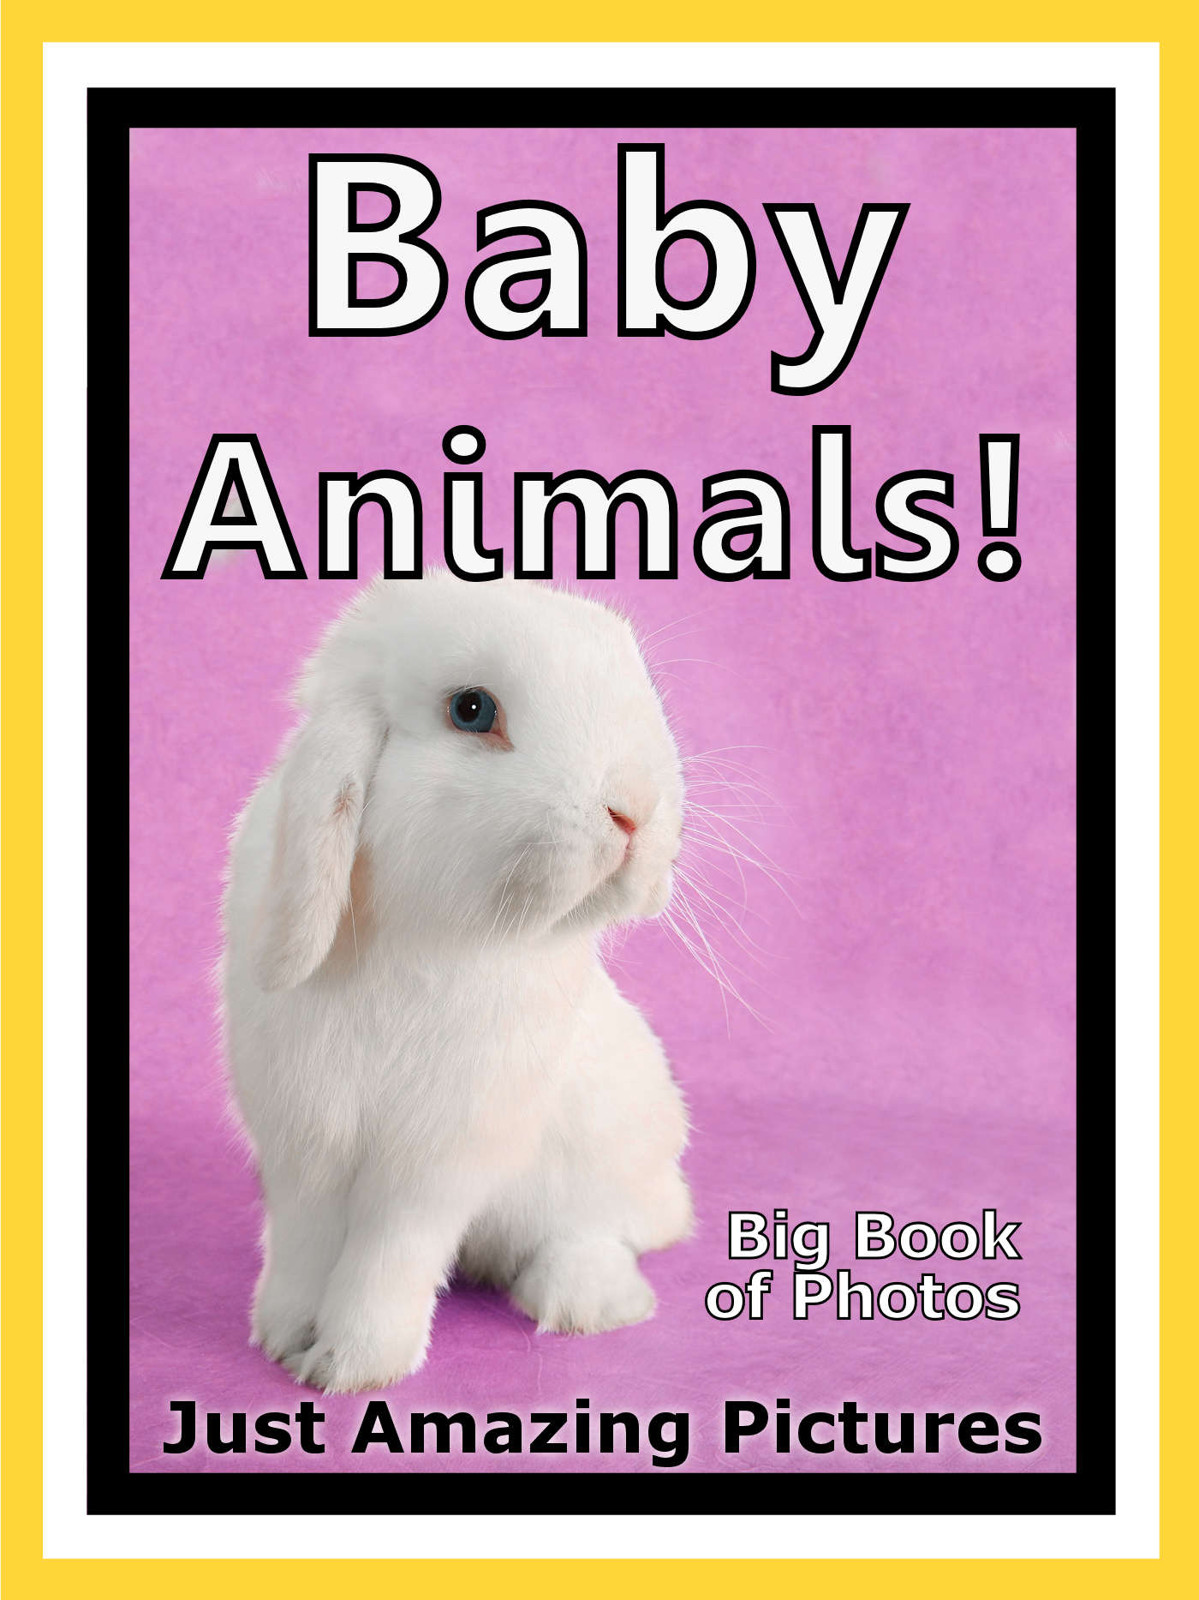 Just Baby Animal Photos! Big Book of Photographs & Pictures of Baby Animals, Vol. 5